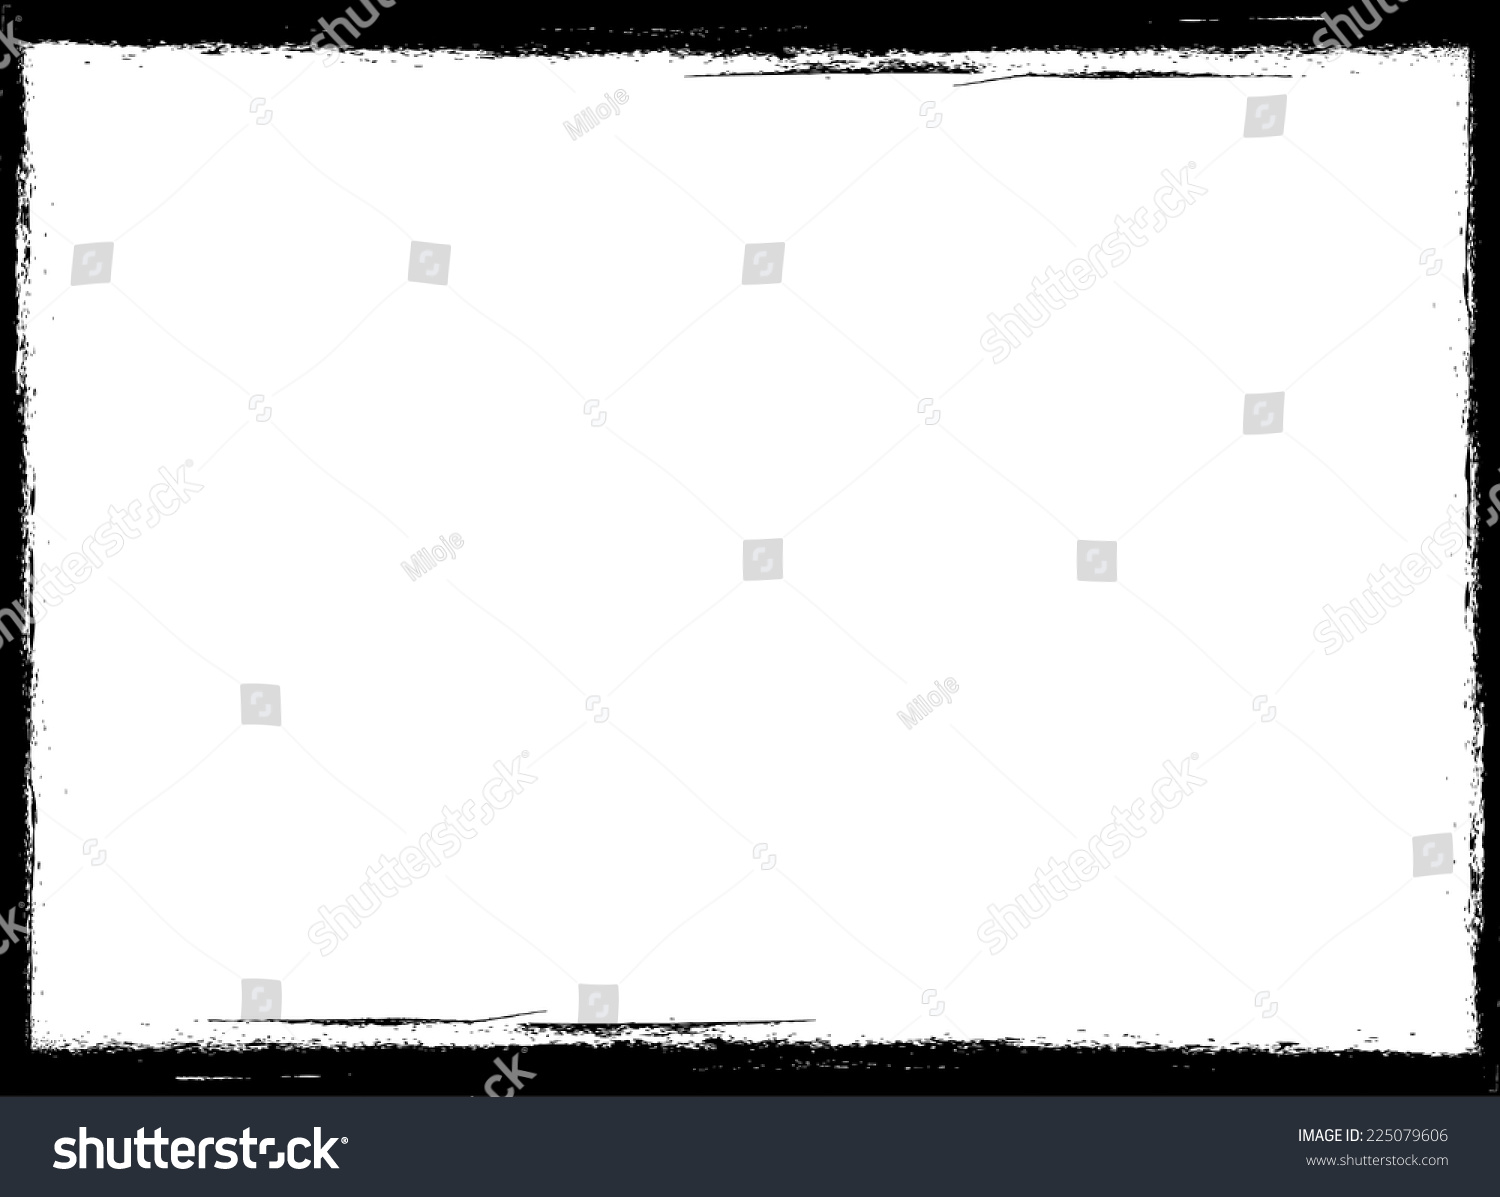 vector vintage grunge black and white distress border frame for your design